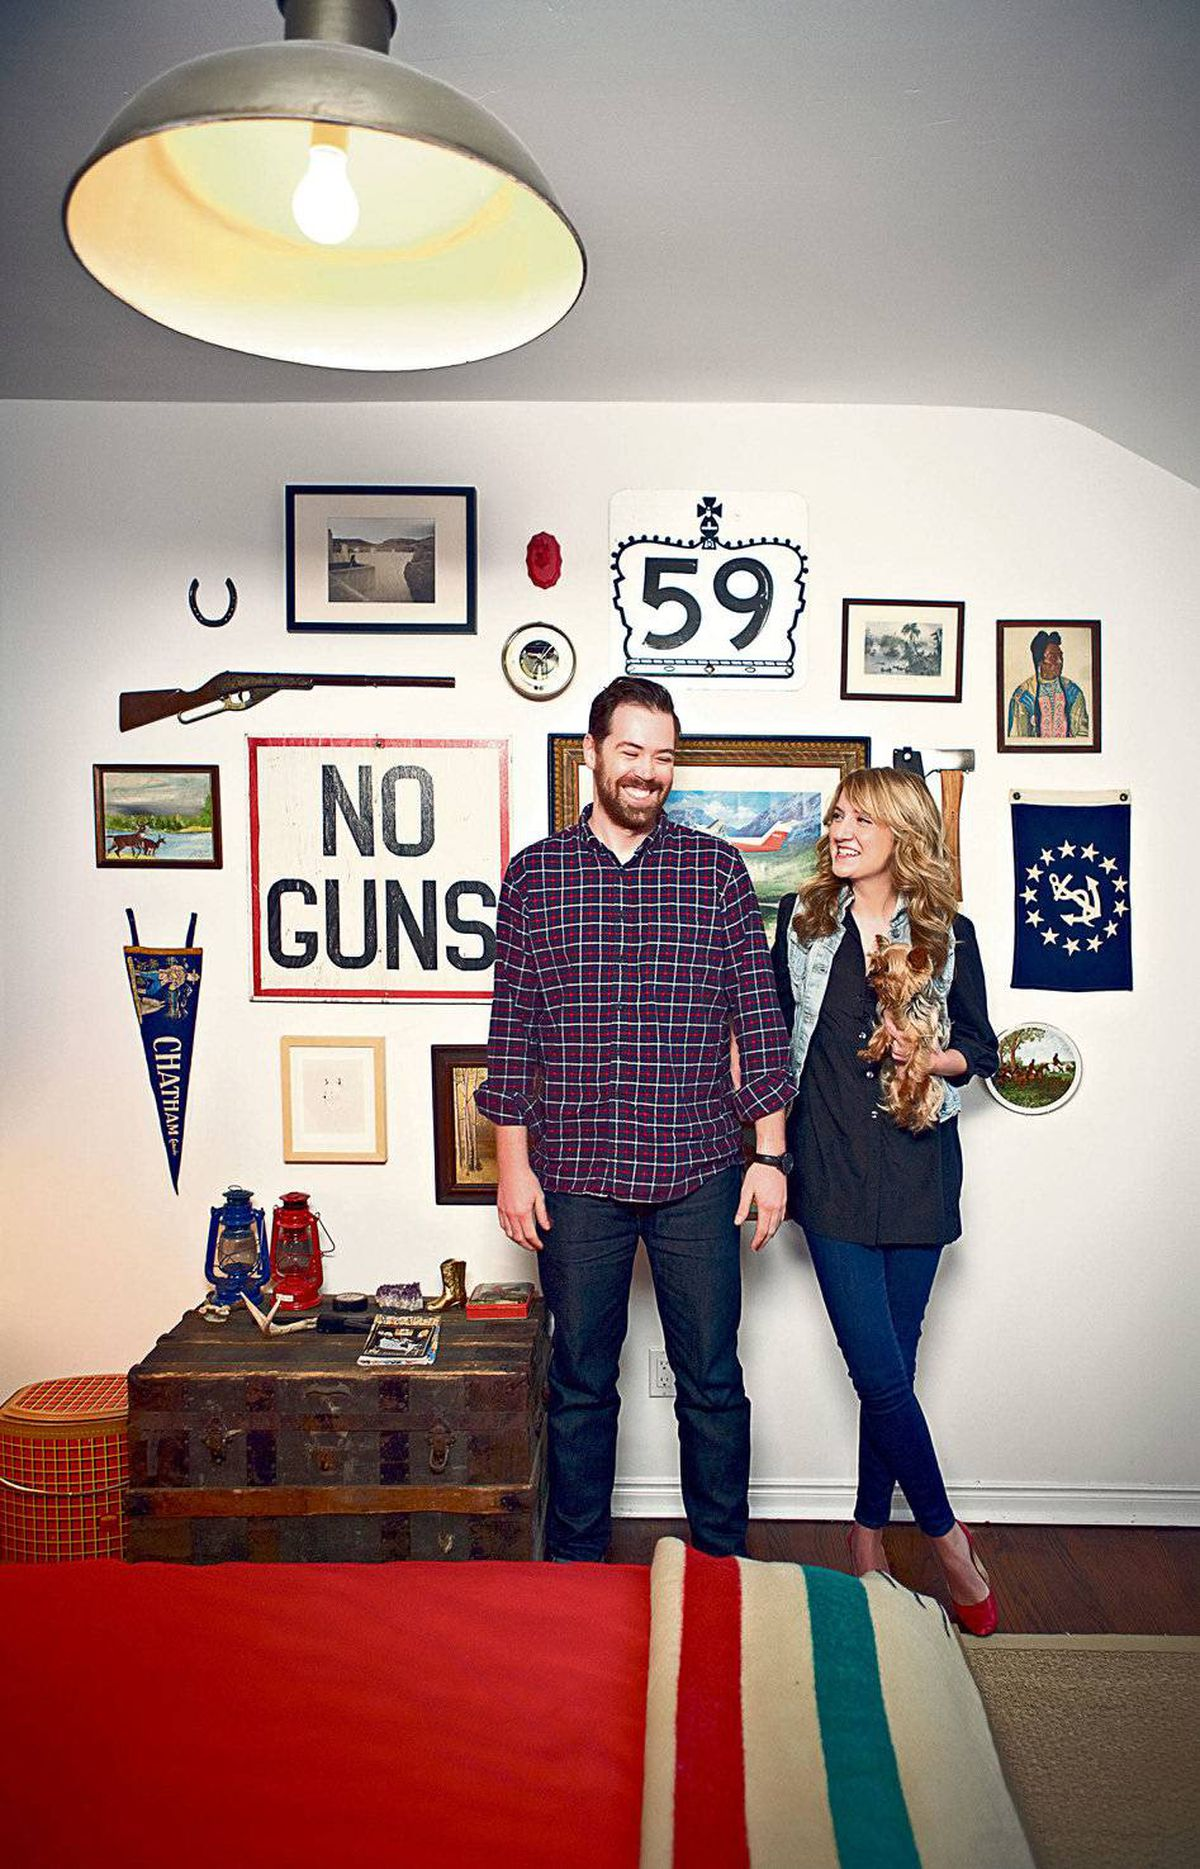 From the vintage Hudson's Bay point blanket at the foot of the bed to the eclectic collection of wall art, the look of James Milward and Sarah Foelske's 'weekend' bedroom is heavy on Canadiana.